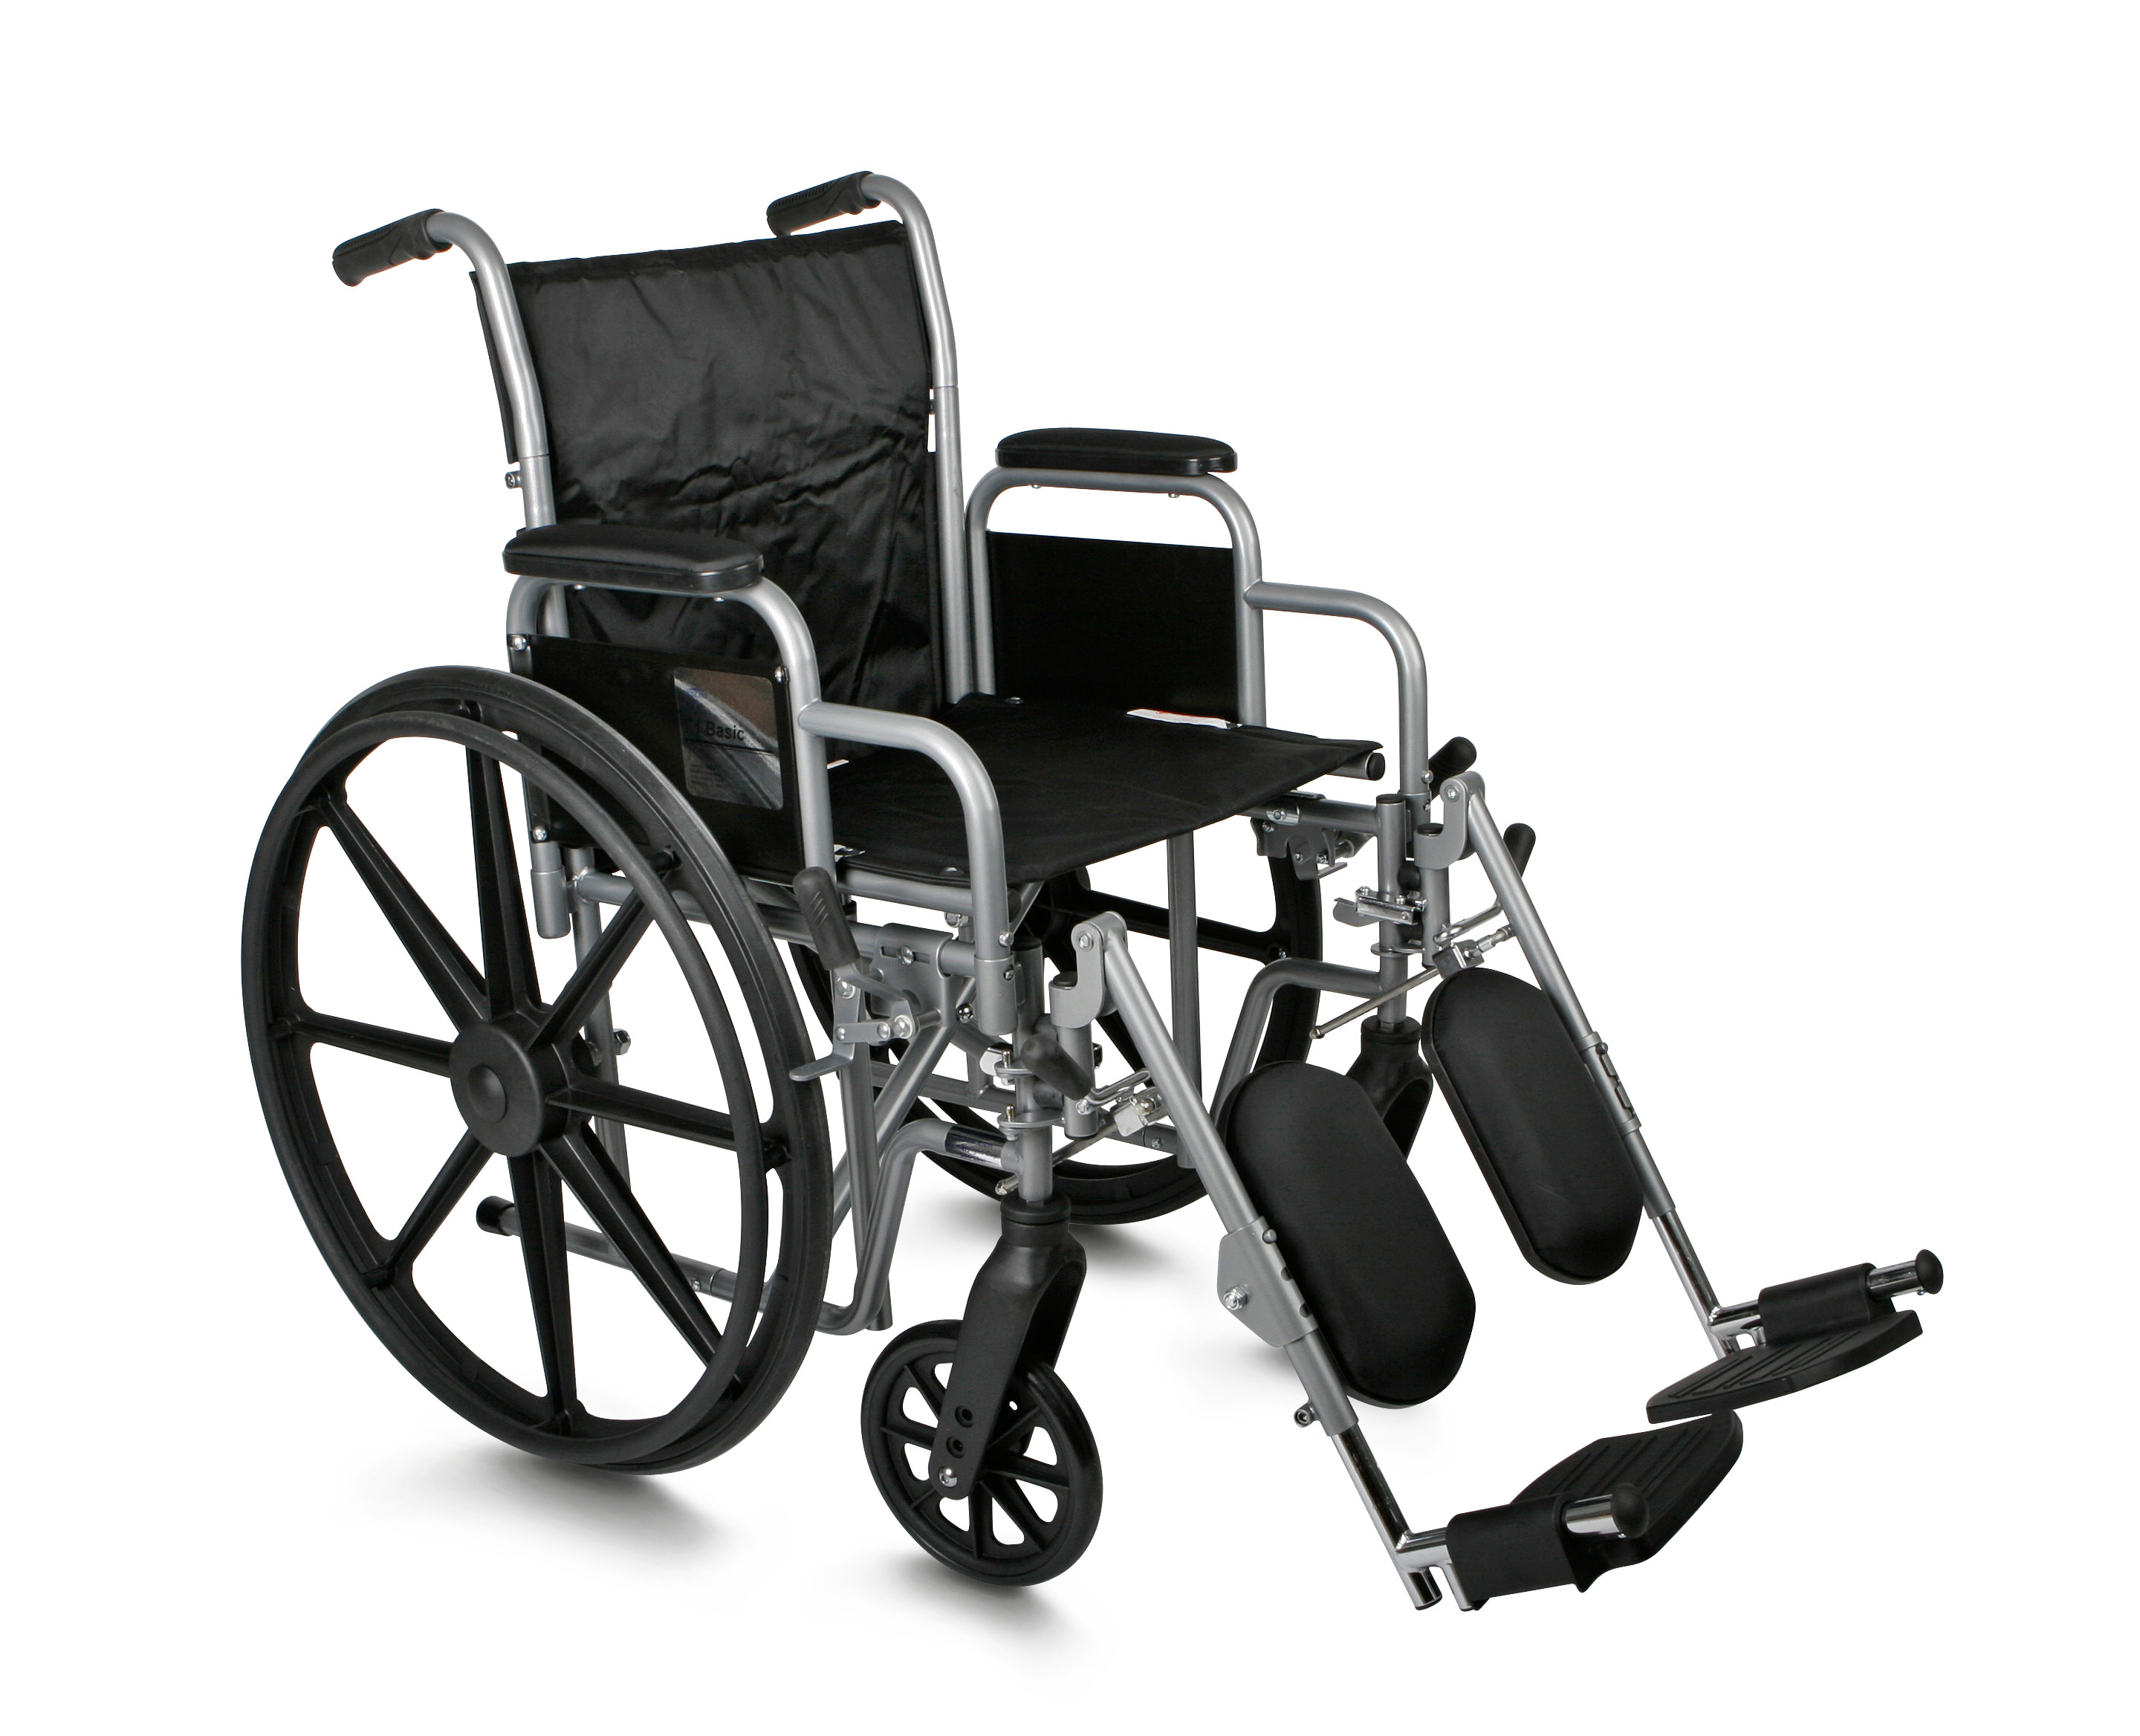 wheel chair in delhi x rocker pro gaming excel k1 wheelchair w removable arms and detachable